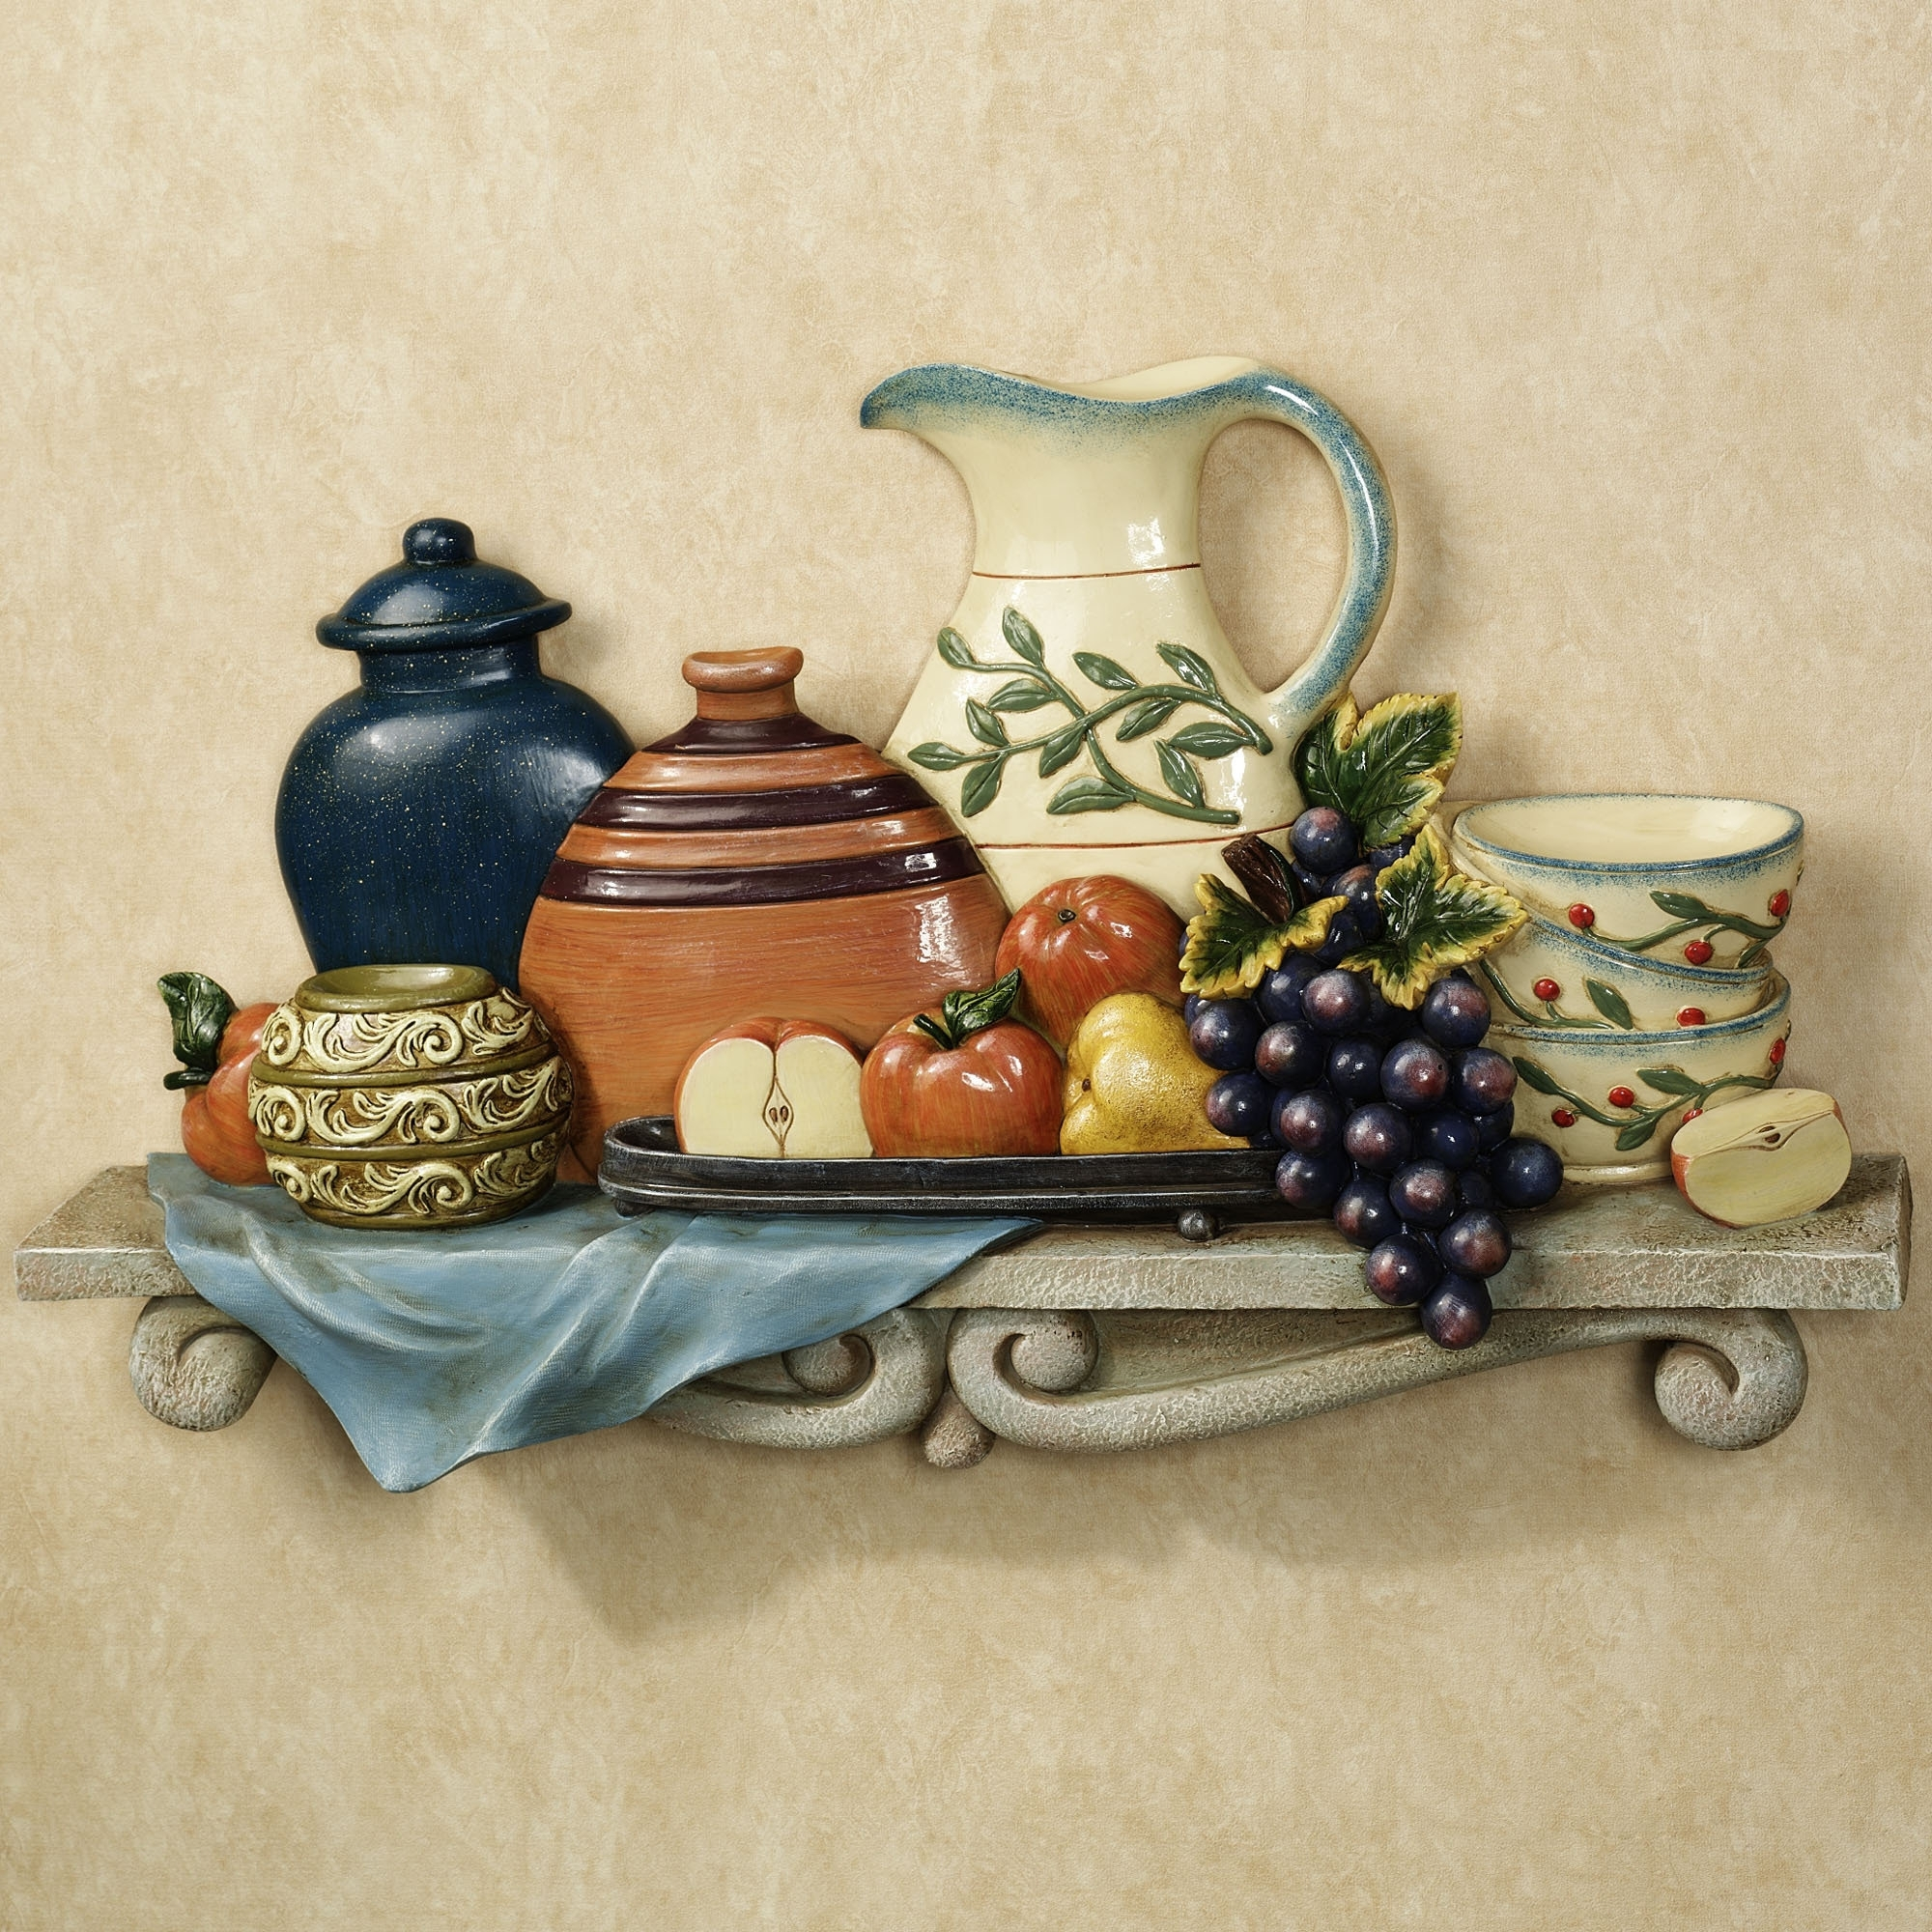 Most Recently Released Italian Wall Art For Bathroom Intended For Kitchen Style: Tuscan Kitchen Wall Decor For Welcoming Ambience (View 8 of 15)